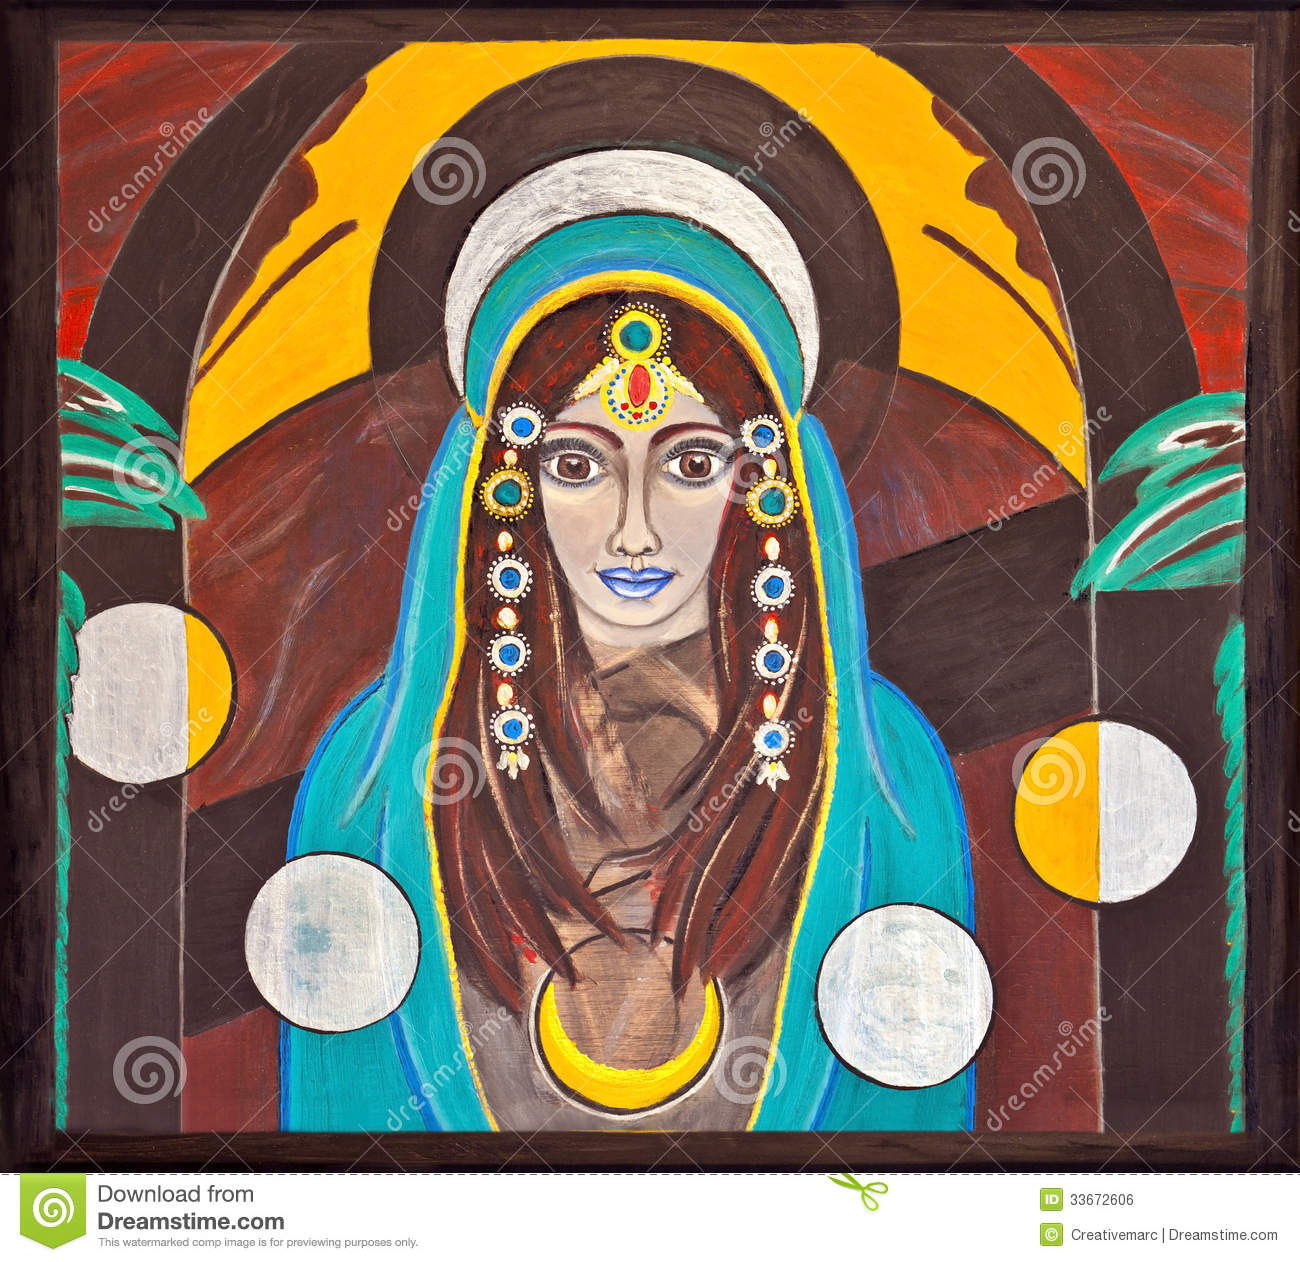 Image of an oriental, holy and spiritual woman